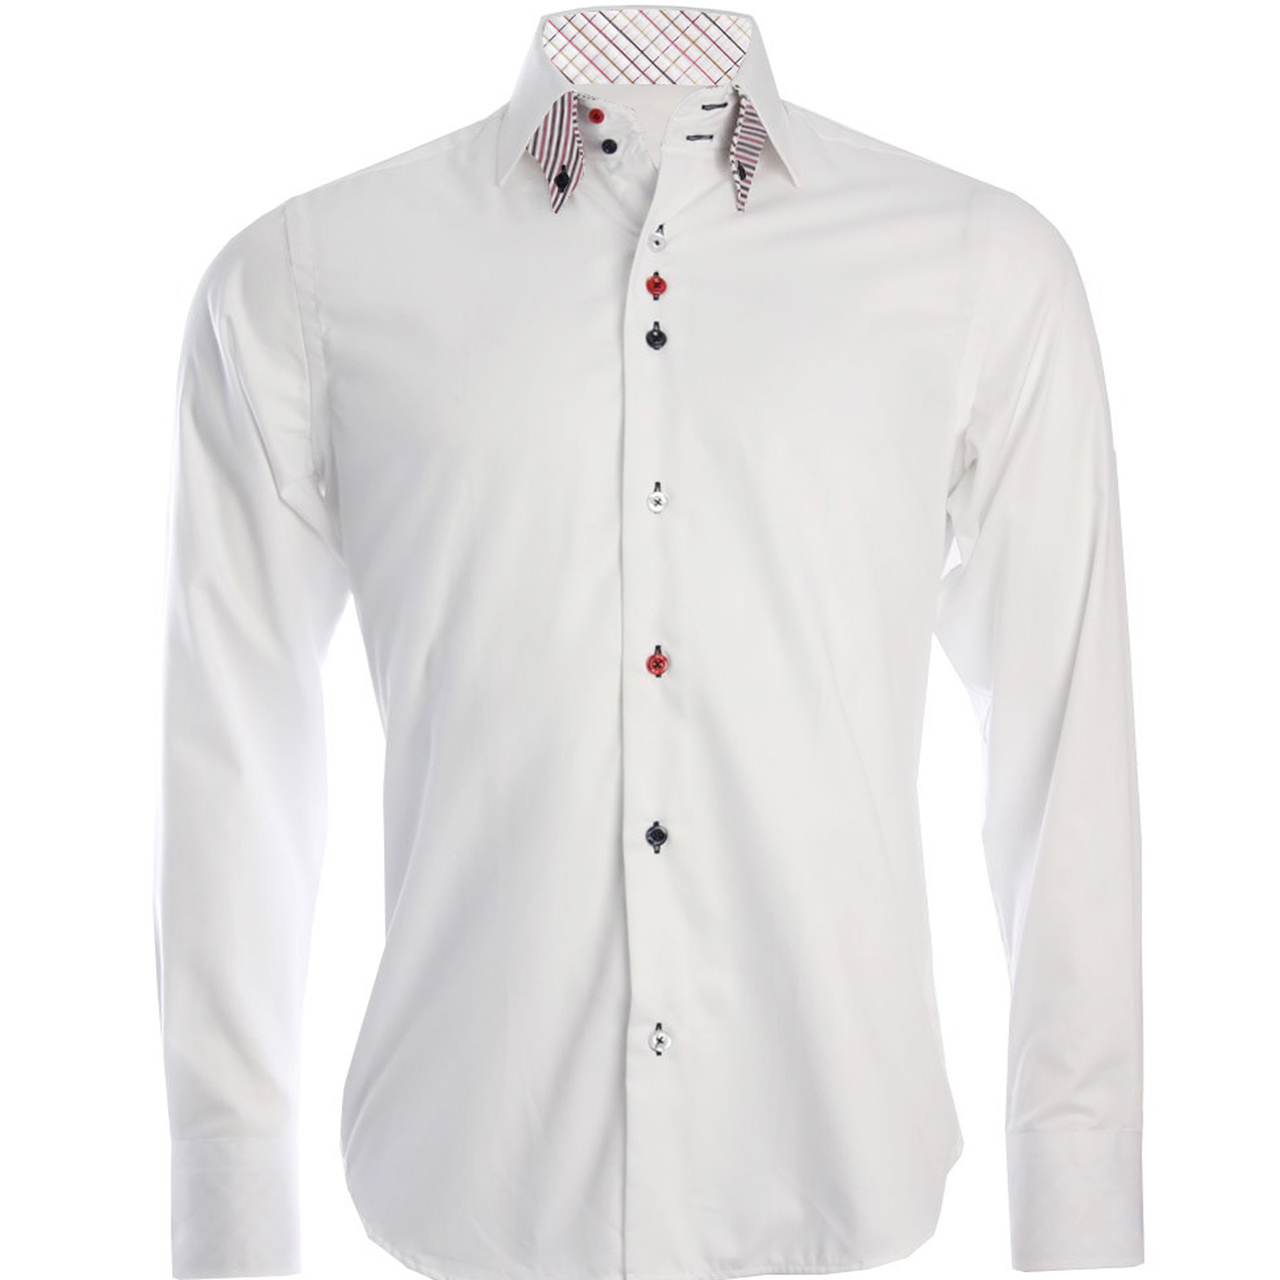 Men 39 s double button collar white shirt for Mens button collar shirts